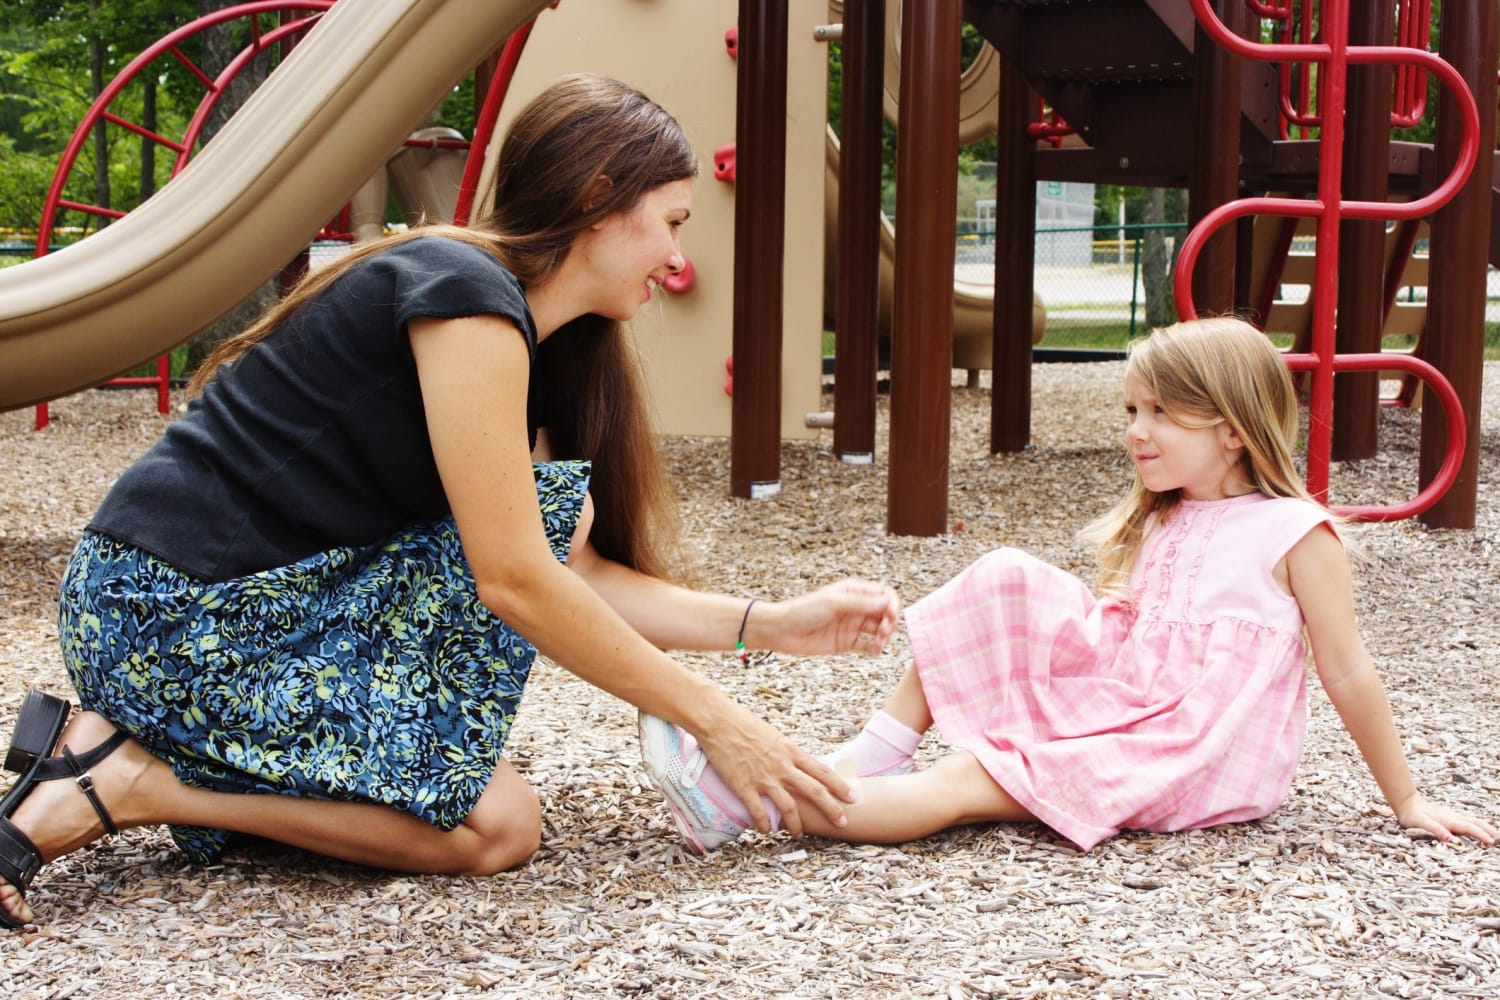 Don't Play Around: Teaching Your Kids Playground Safety